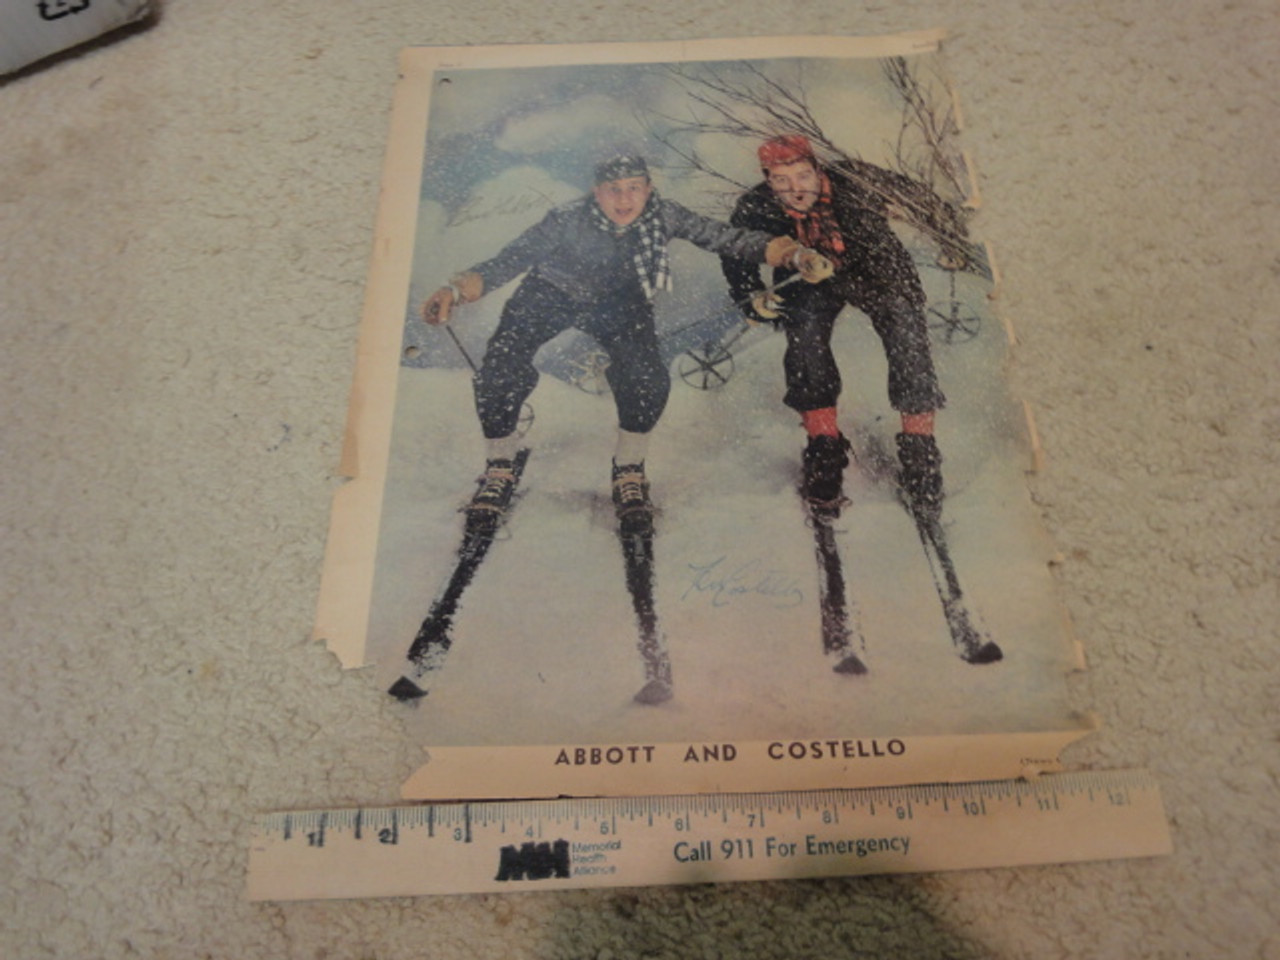 Abbott And Costello Bud Abbott and Lou Costello Color Photo Signed Autograph 1943